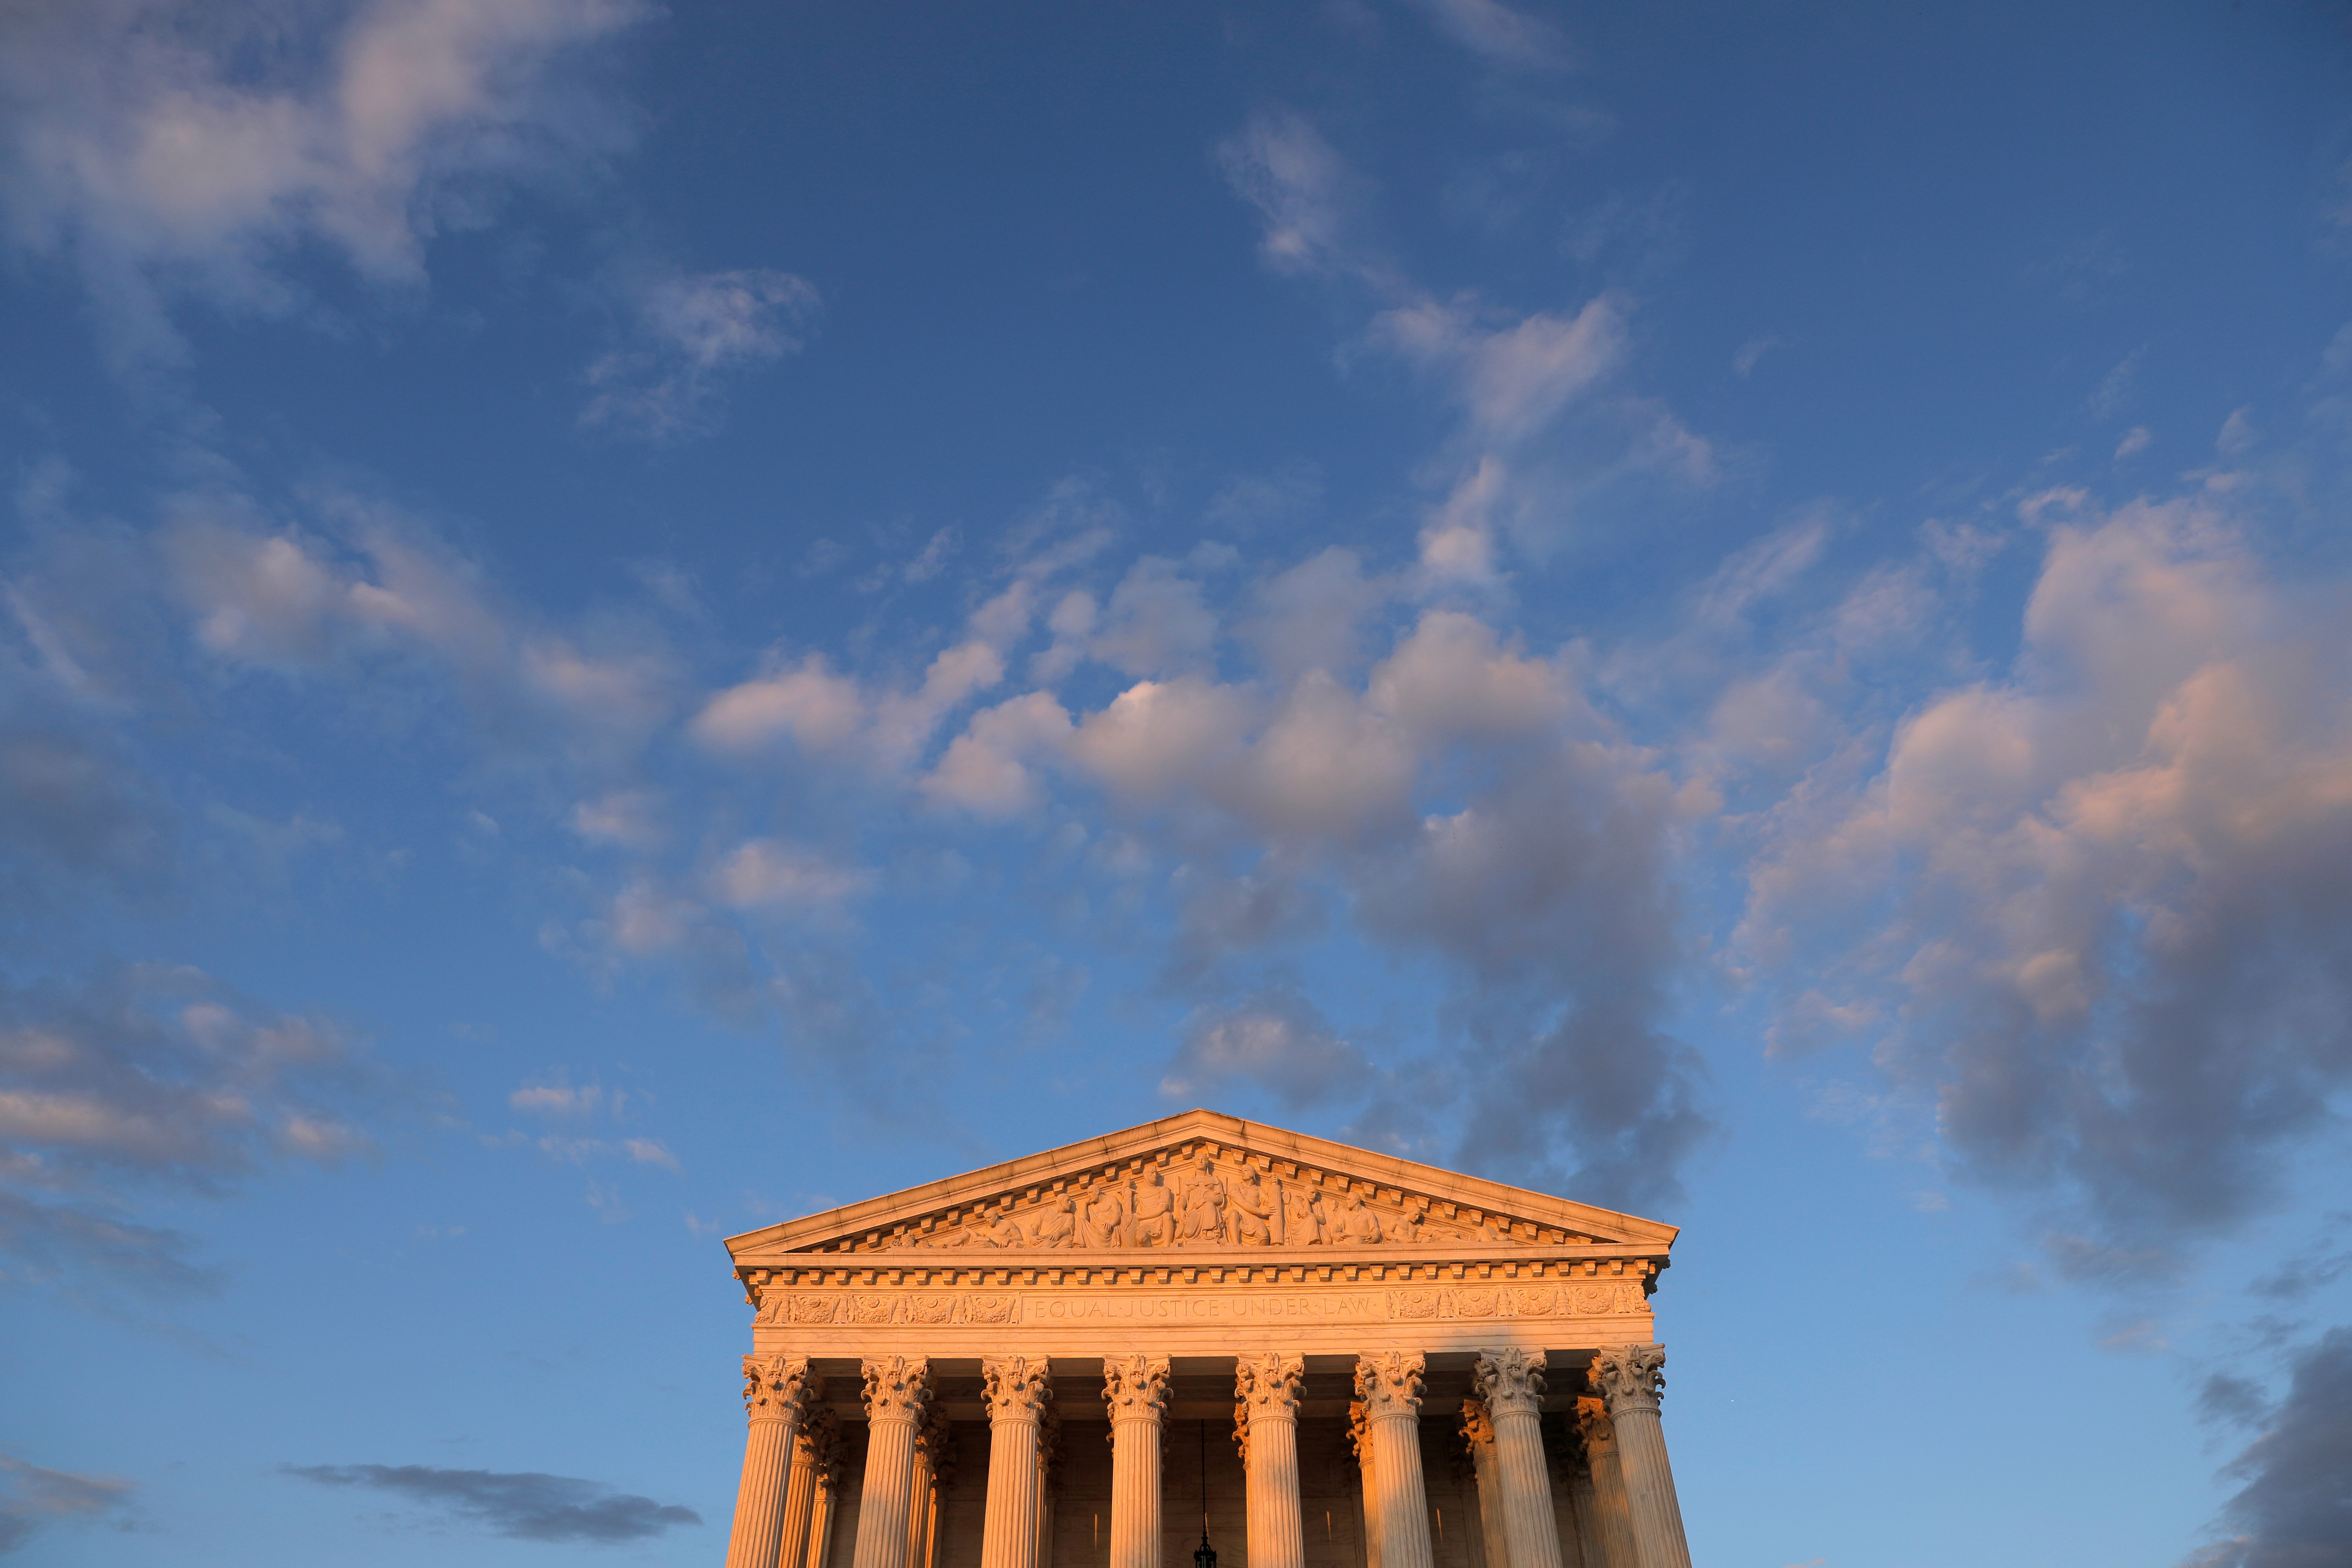 Light from the sunset shines on the United States Supreme Court Building in Washington, D.C., U.S., REUTERS/Andrew Kelly